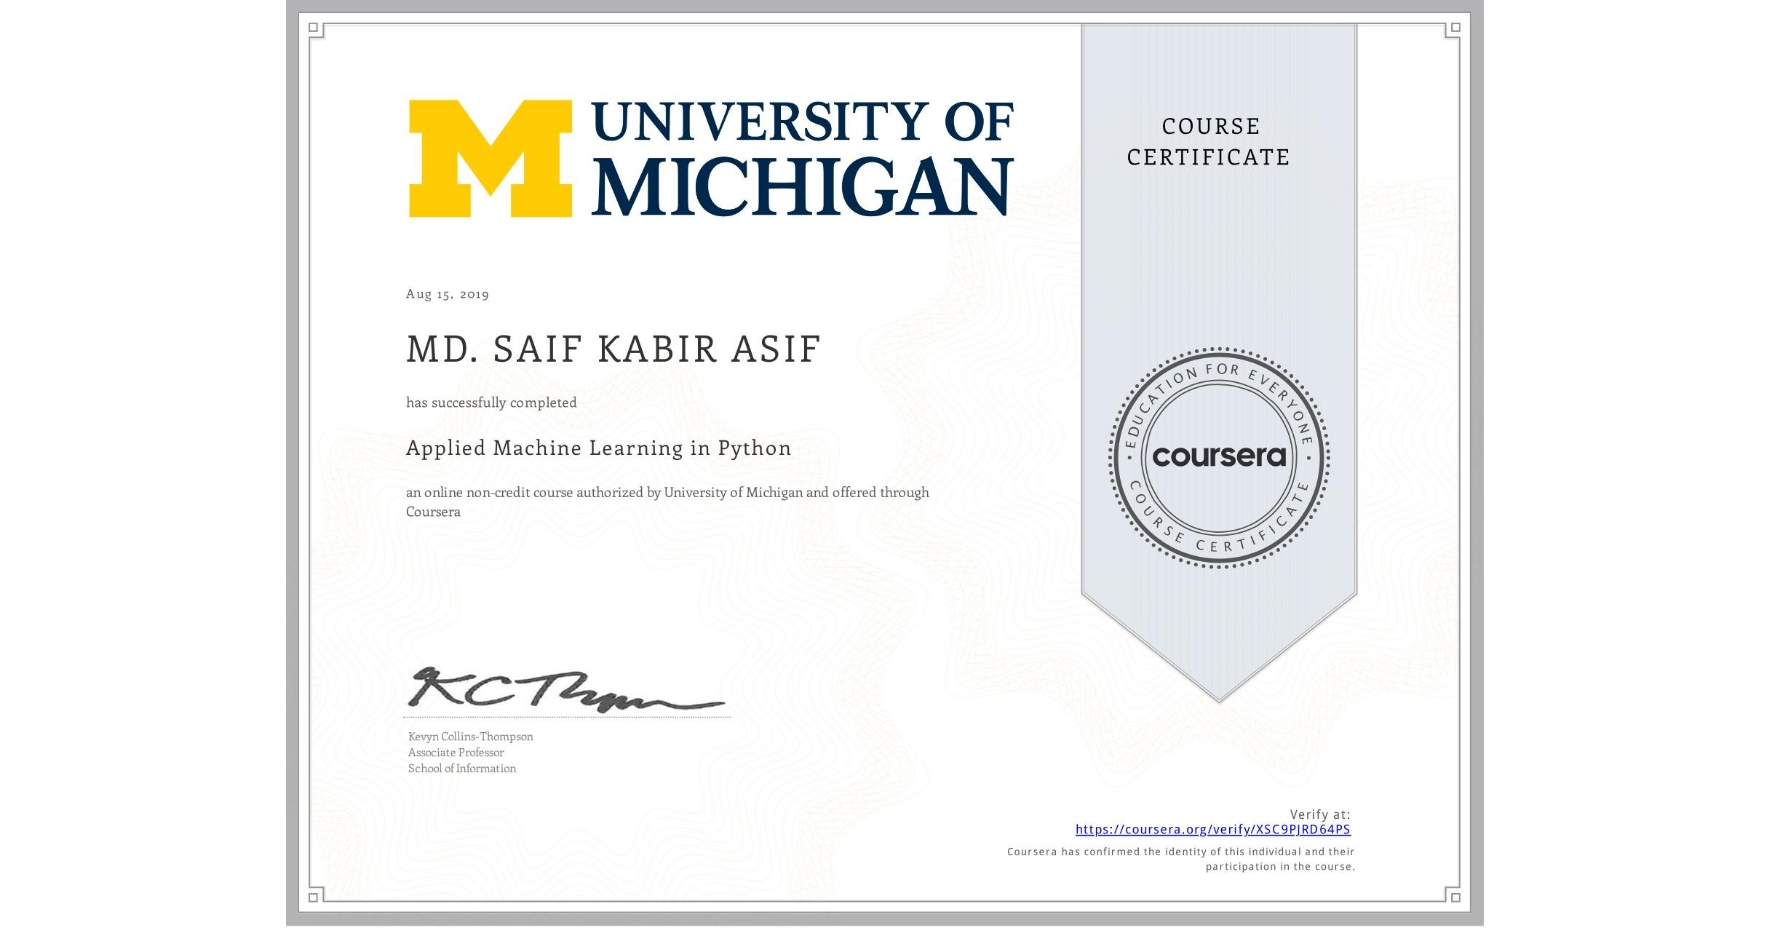 View certificate for Md. Saif Kabir  Asif, Applied Machine Learning in Python, an online non-credit course authorized by University of Michigan and offered through Coursera